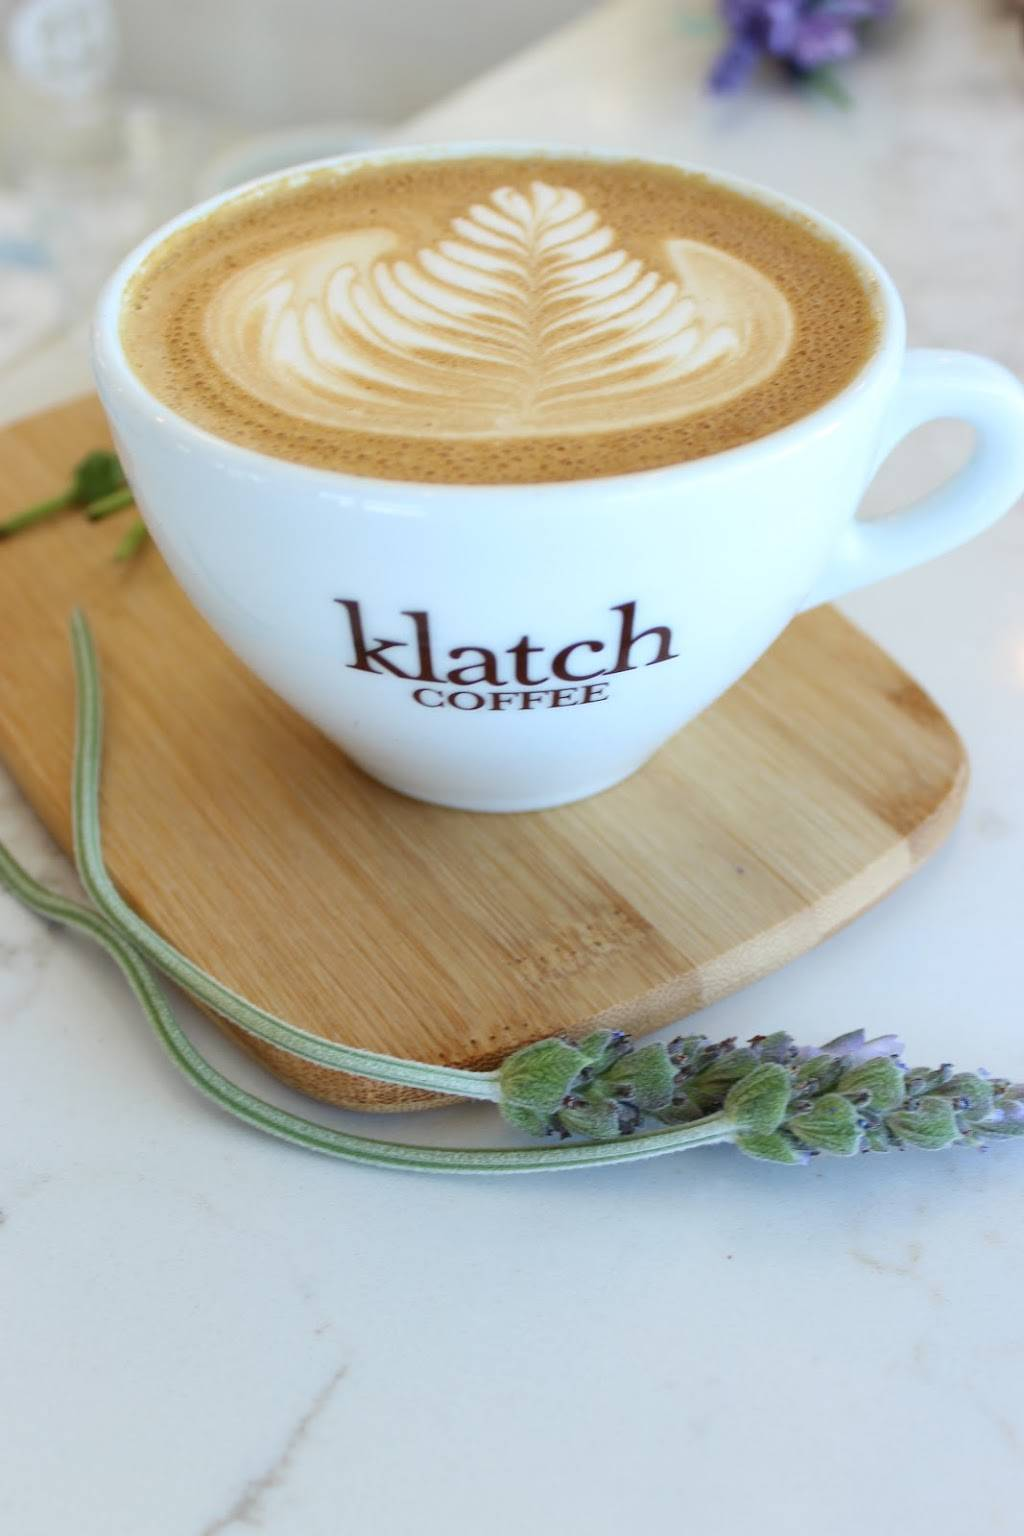 Klatch Coffee Rancho | cafe | 8916 Foothill Blvd, Rancho Cucamonga, CA 91730, USA | 9099445282 OR +1 909-944-5282